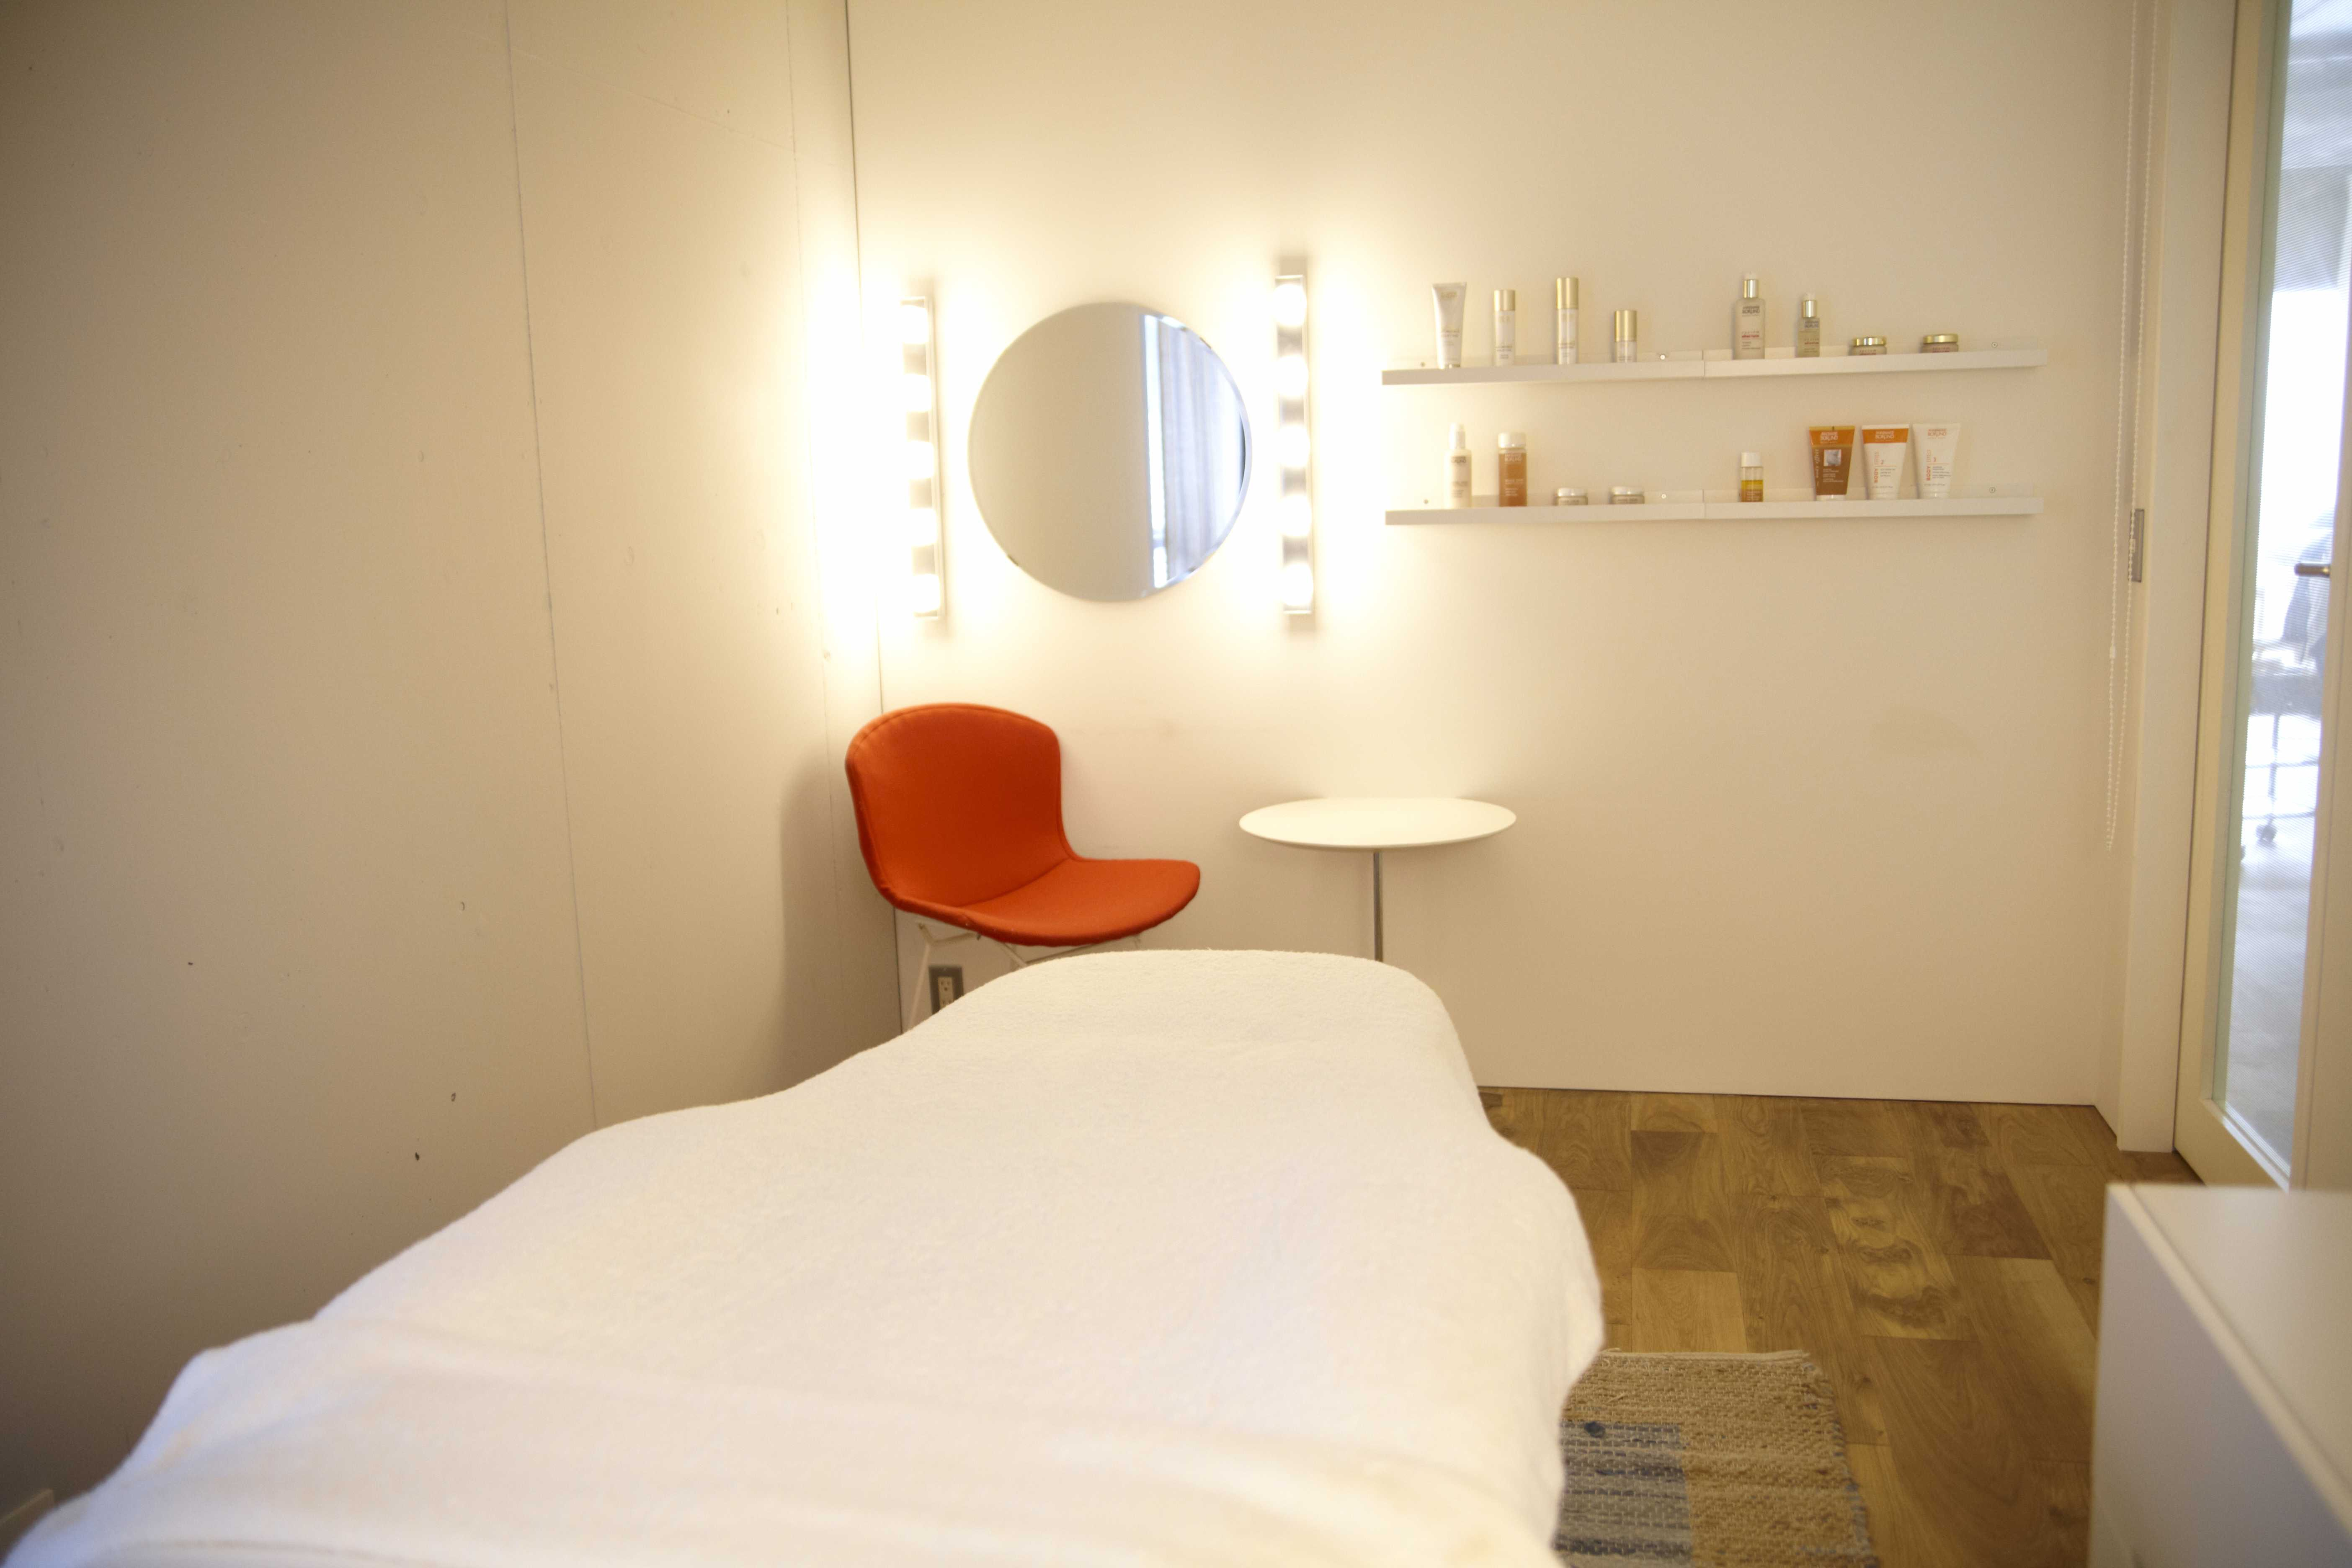 uka Omotesando private treatment room